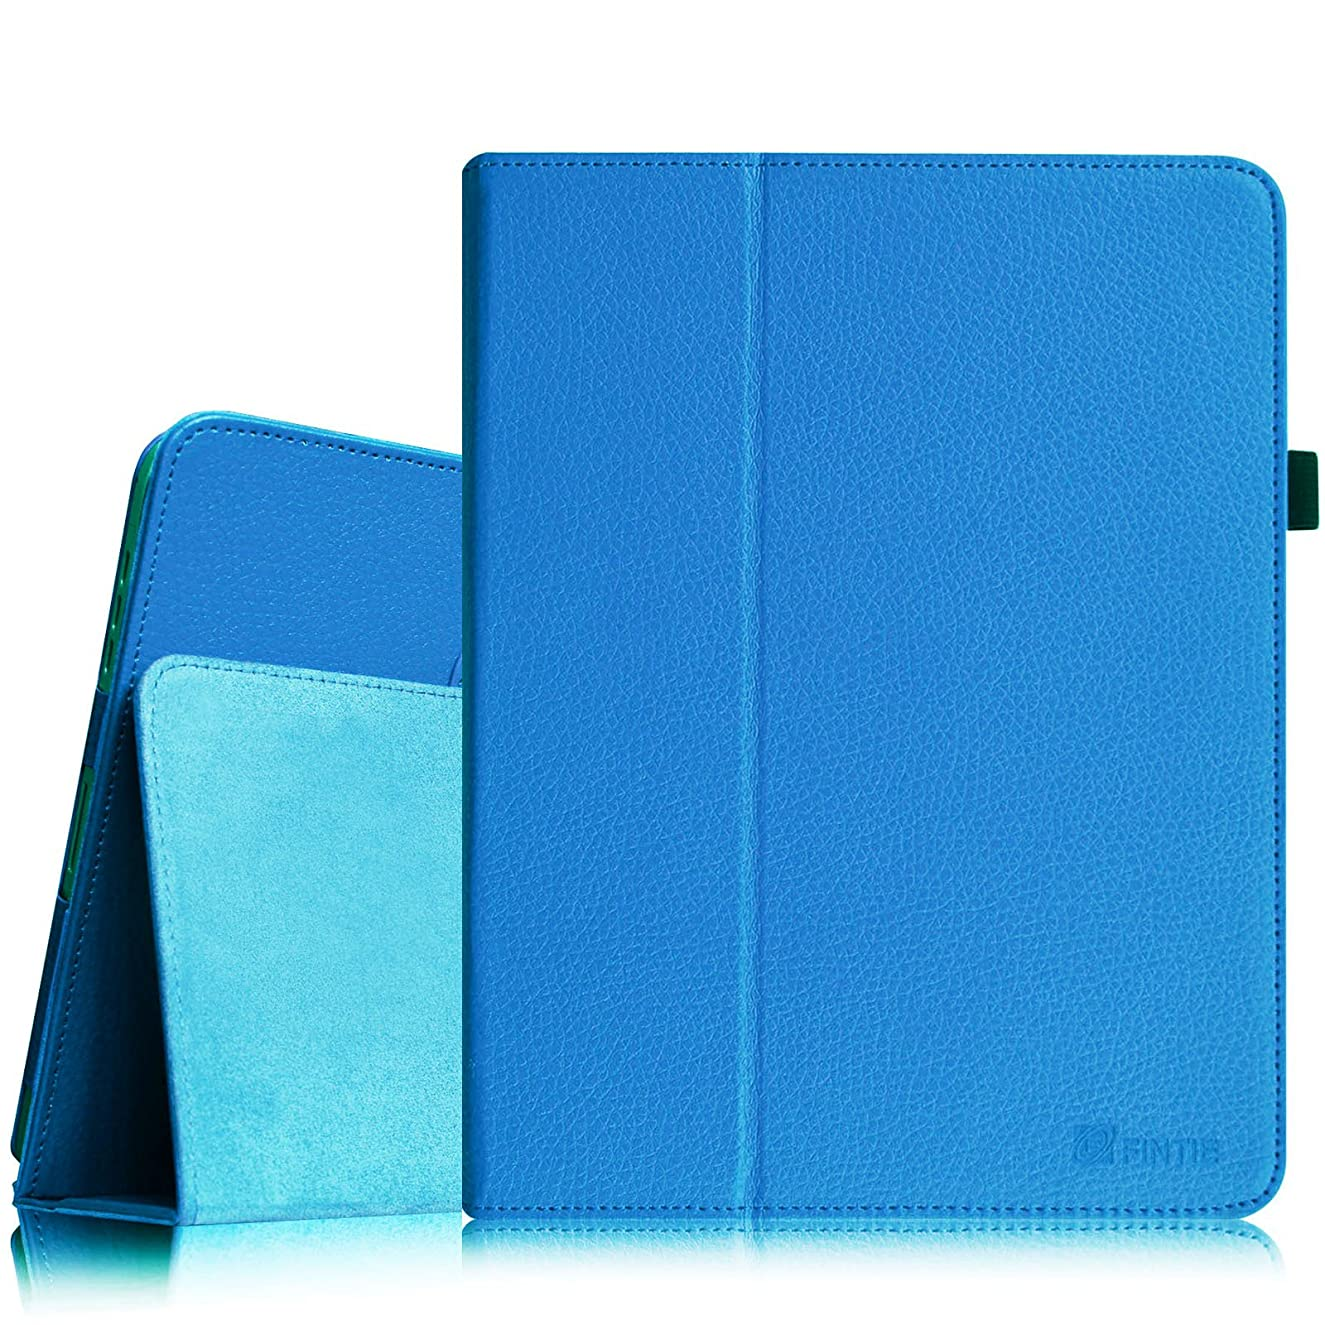 Fintie iPad 1 Folio Case - Slim Fit Vegan Leather Stand Cover with Stylus Holder for Apple iPad 1st Generation, Blue